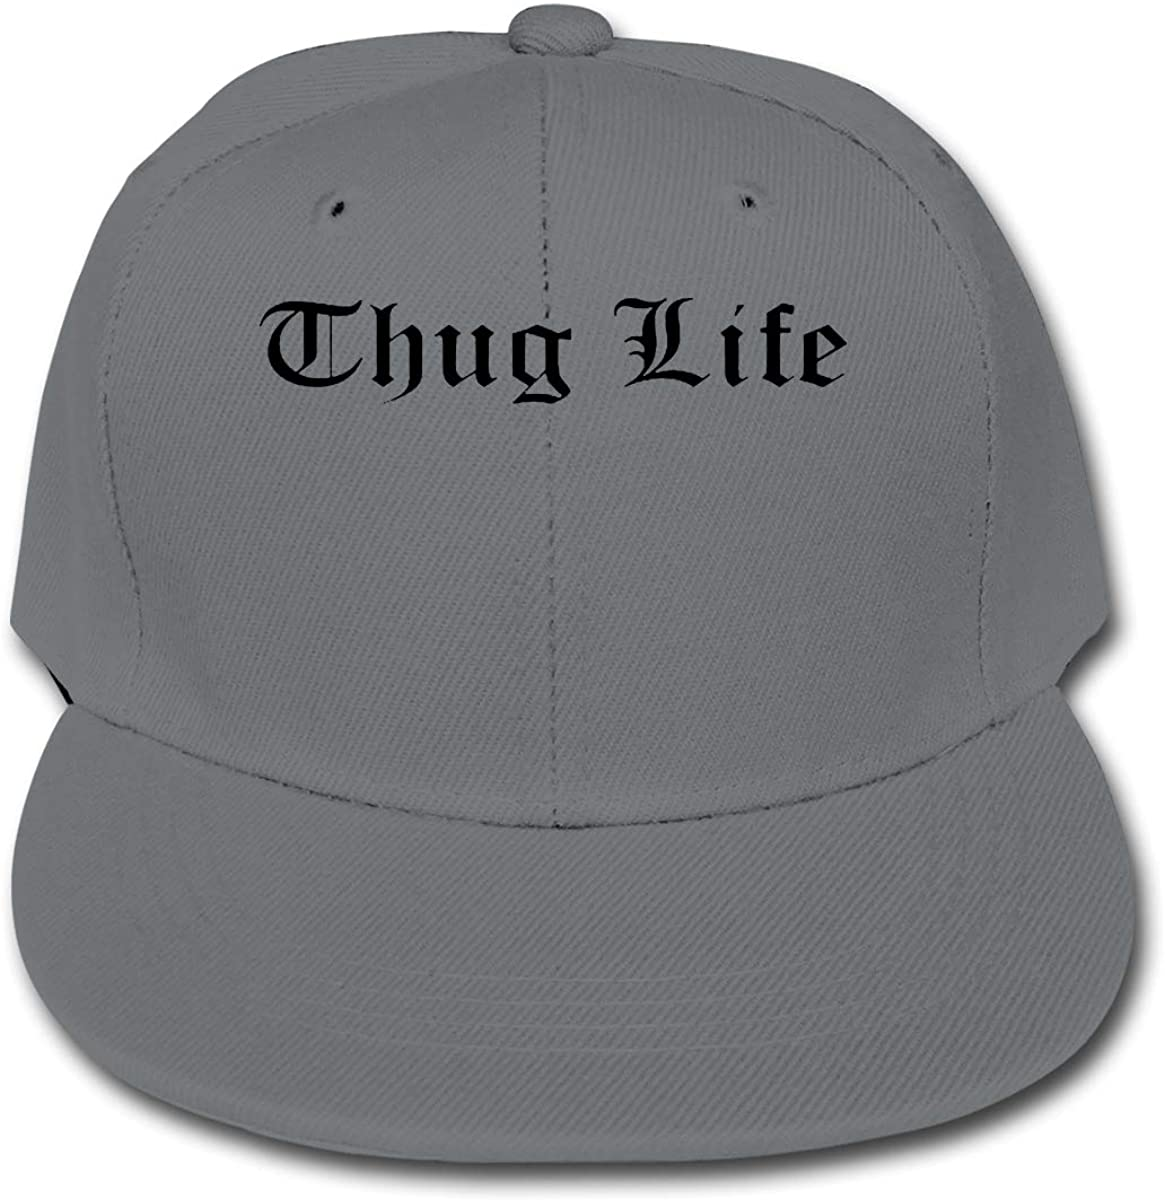 Manlee Thug Life Unisex Kids Plain Cotton Adjustable Low Profile Baseball Cap Hat